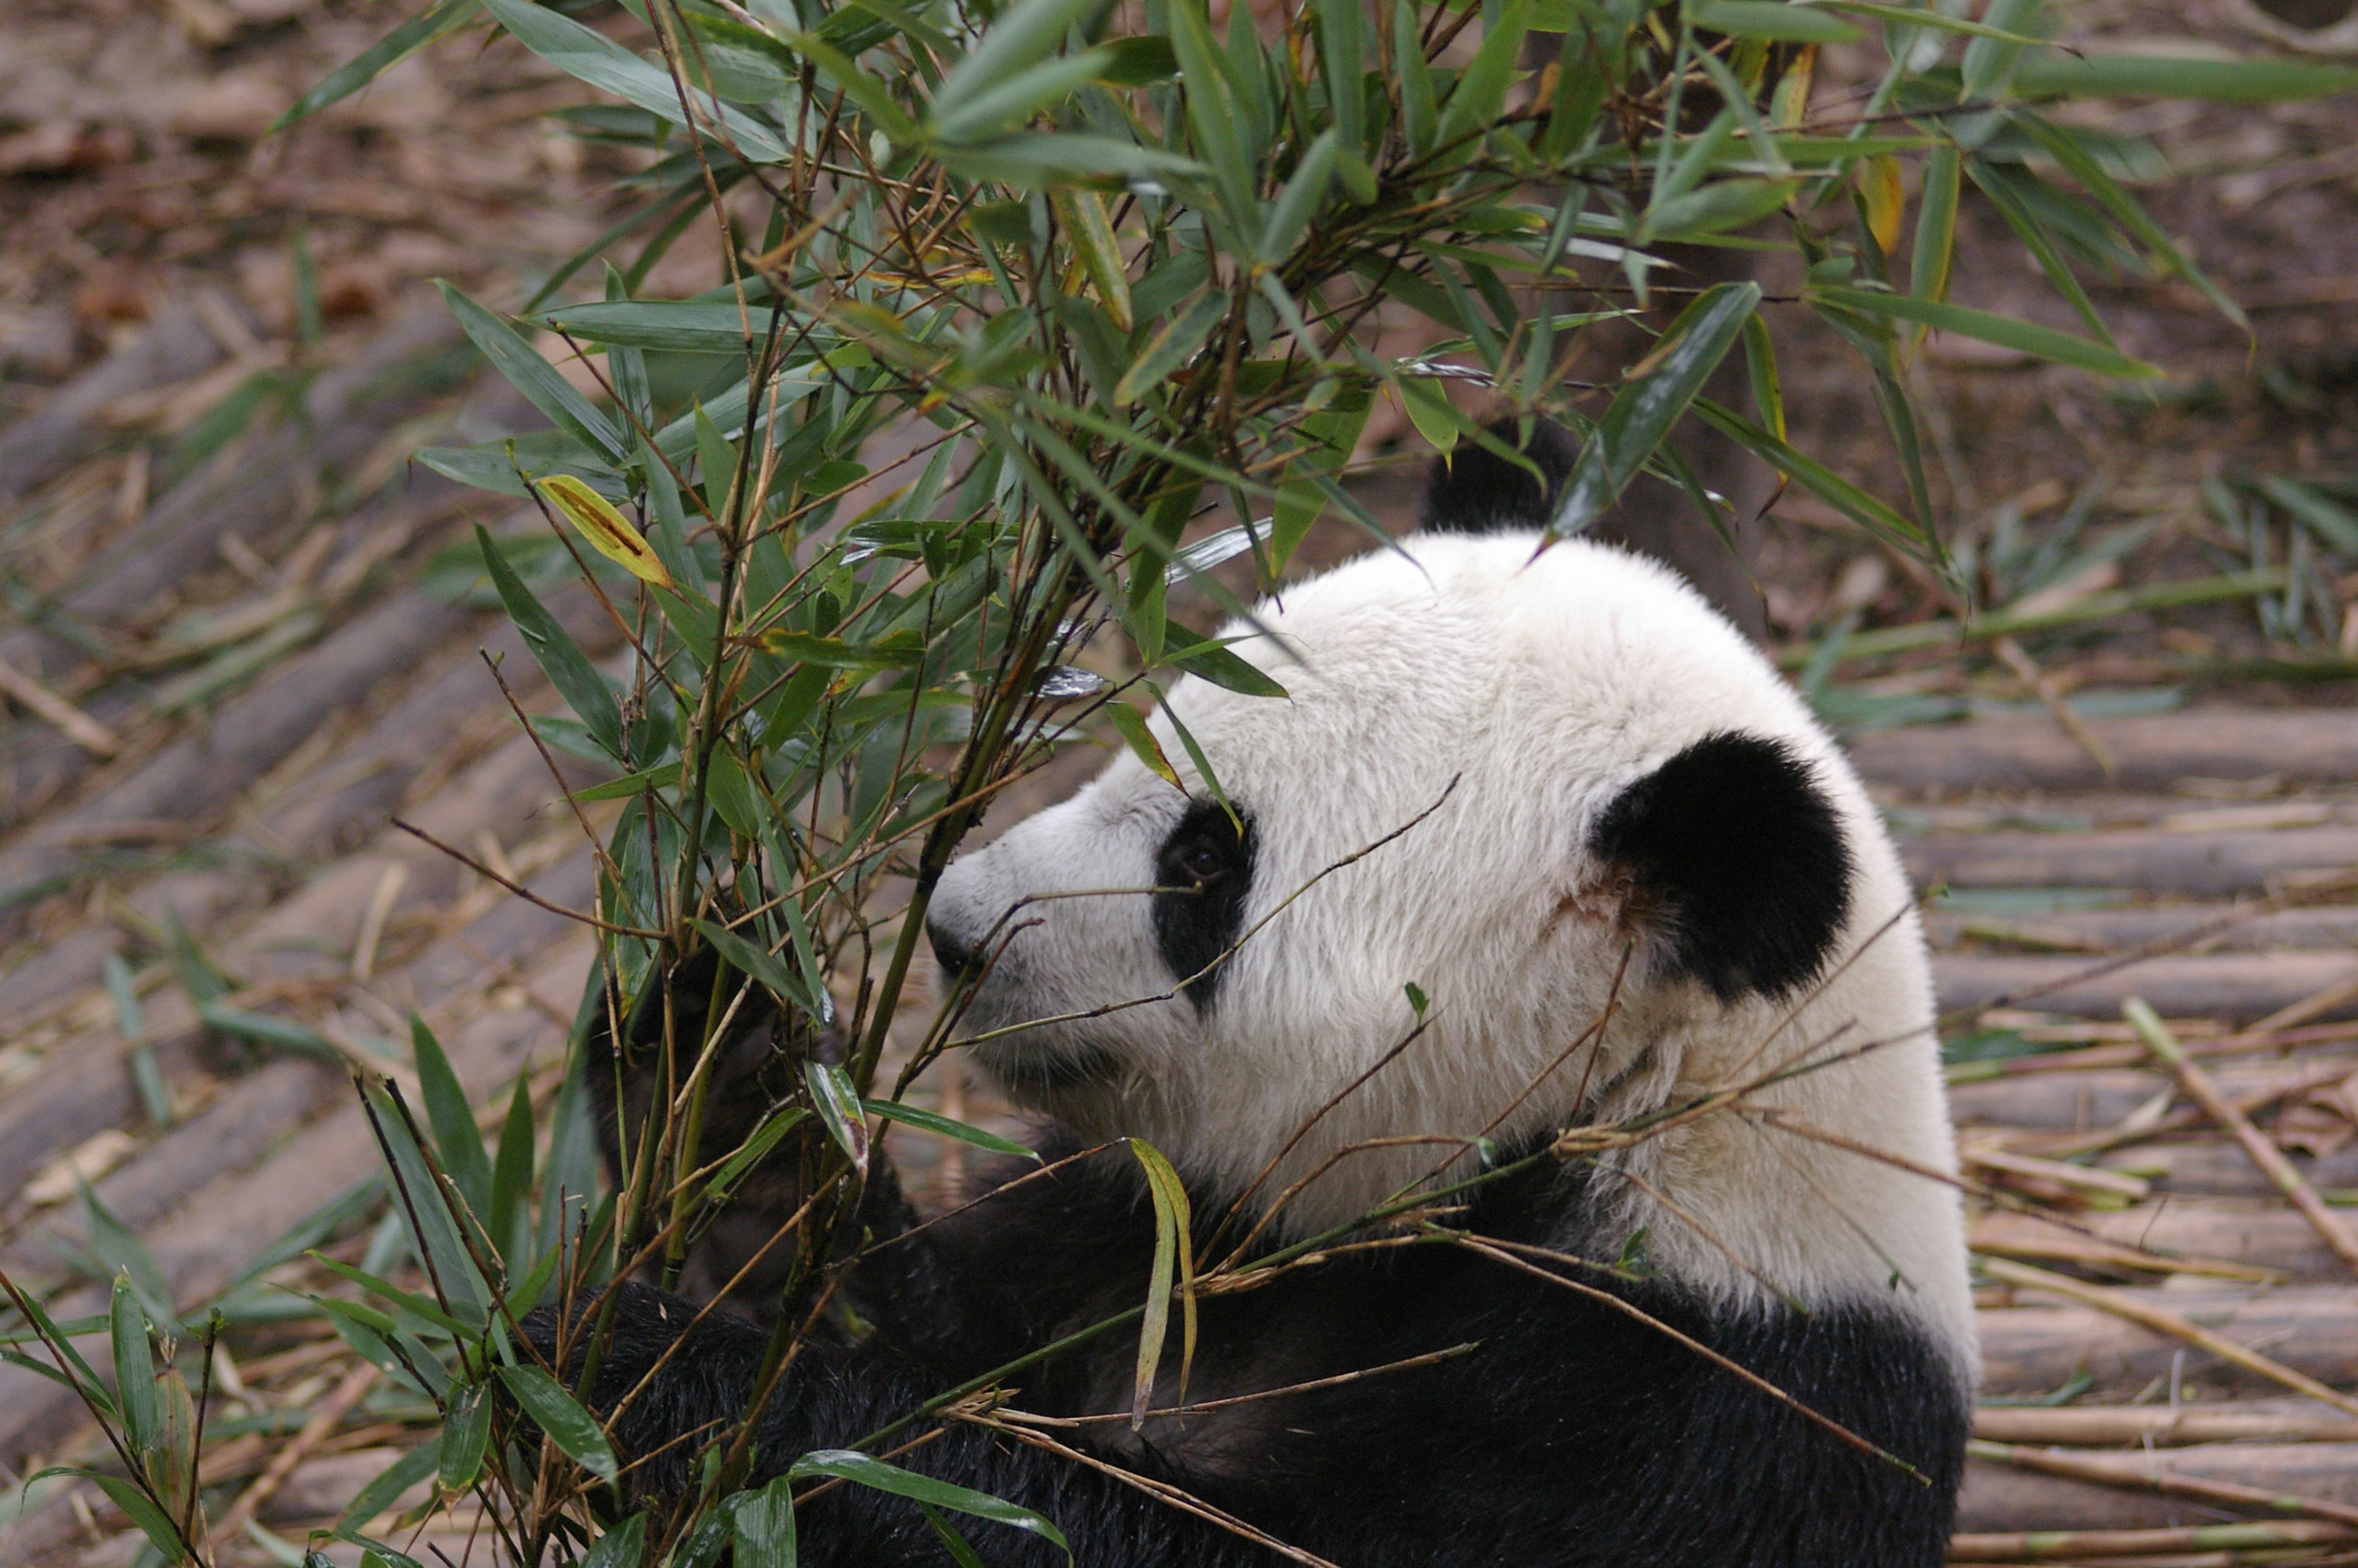 Close up Black and White Panda at the Animal Zoo at China Eating Bamboo Shoots.